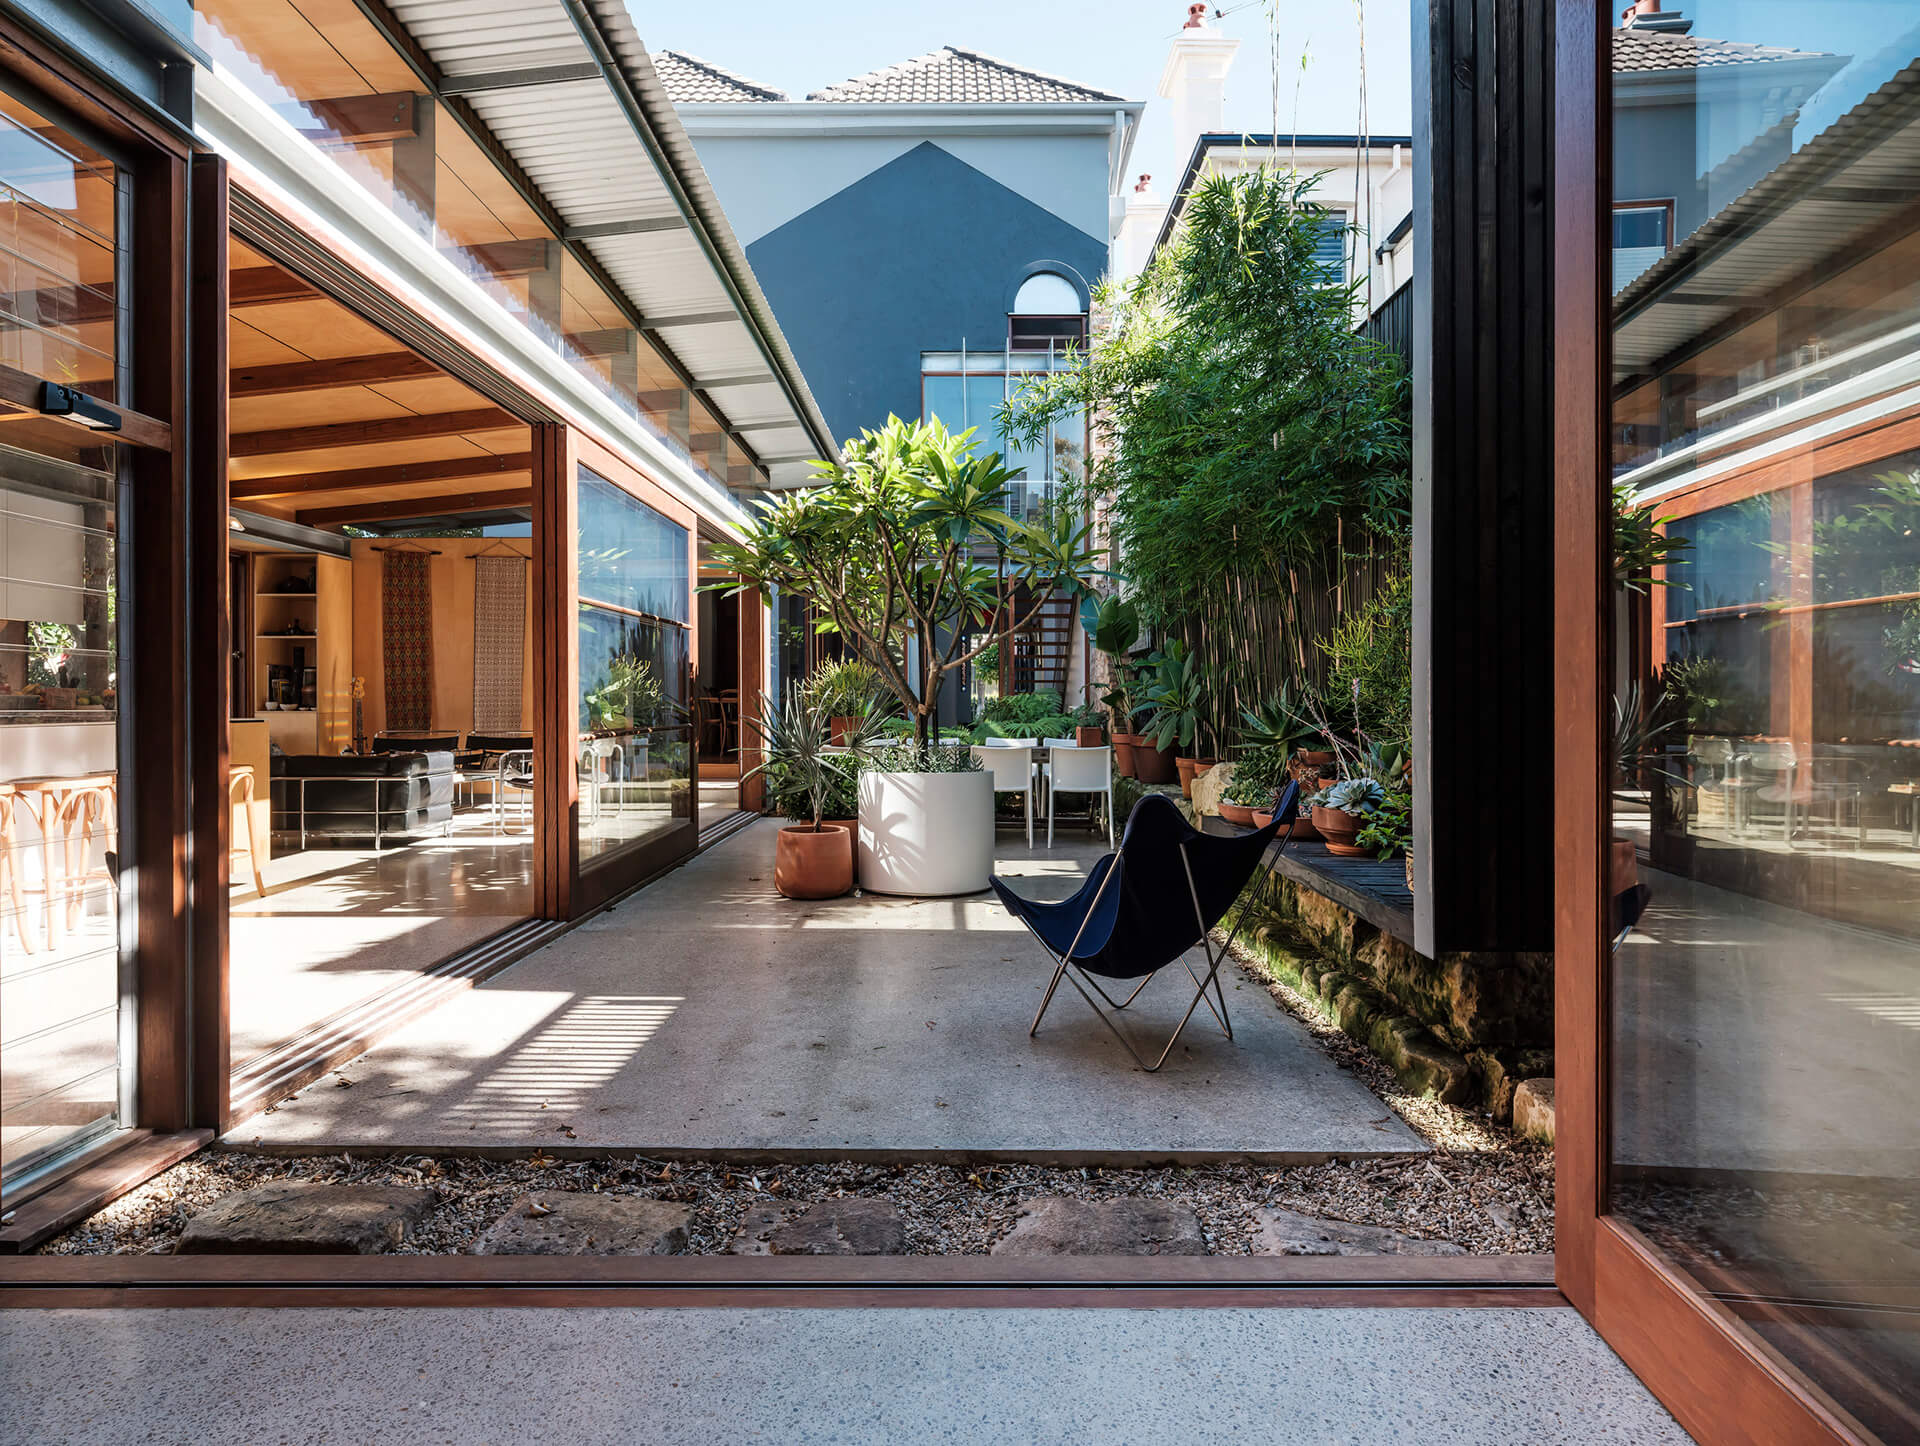 The courtyard inspired from 'riad' – a Moroccan house typology | Courtyard House by COX Architecture | STIRworld